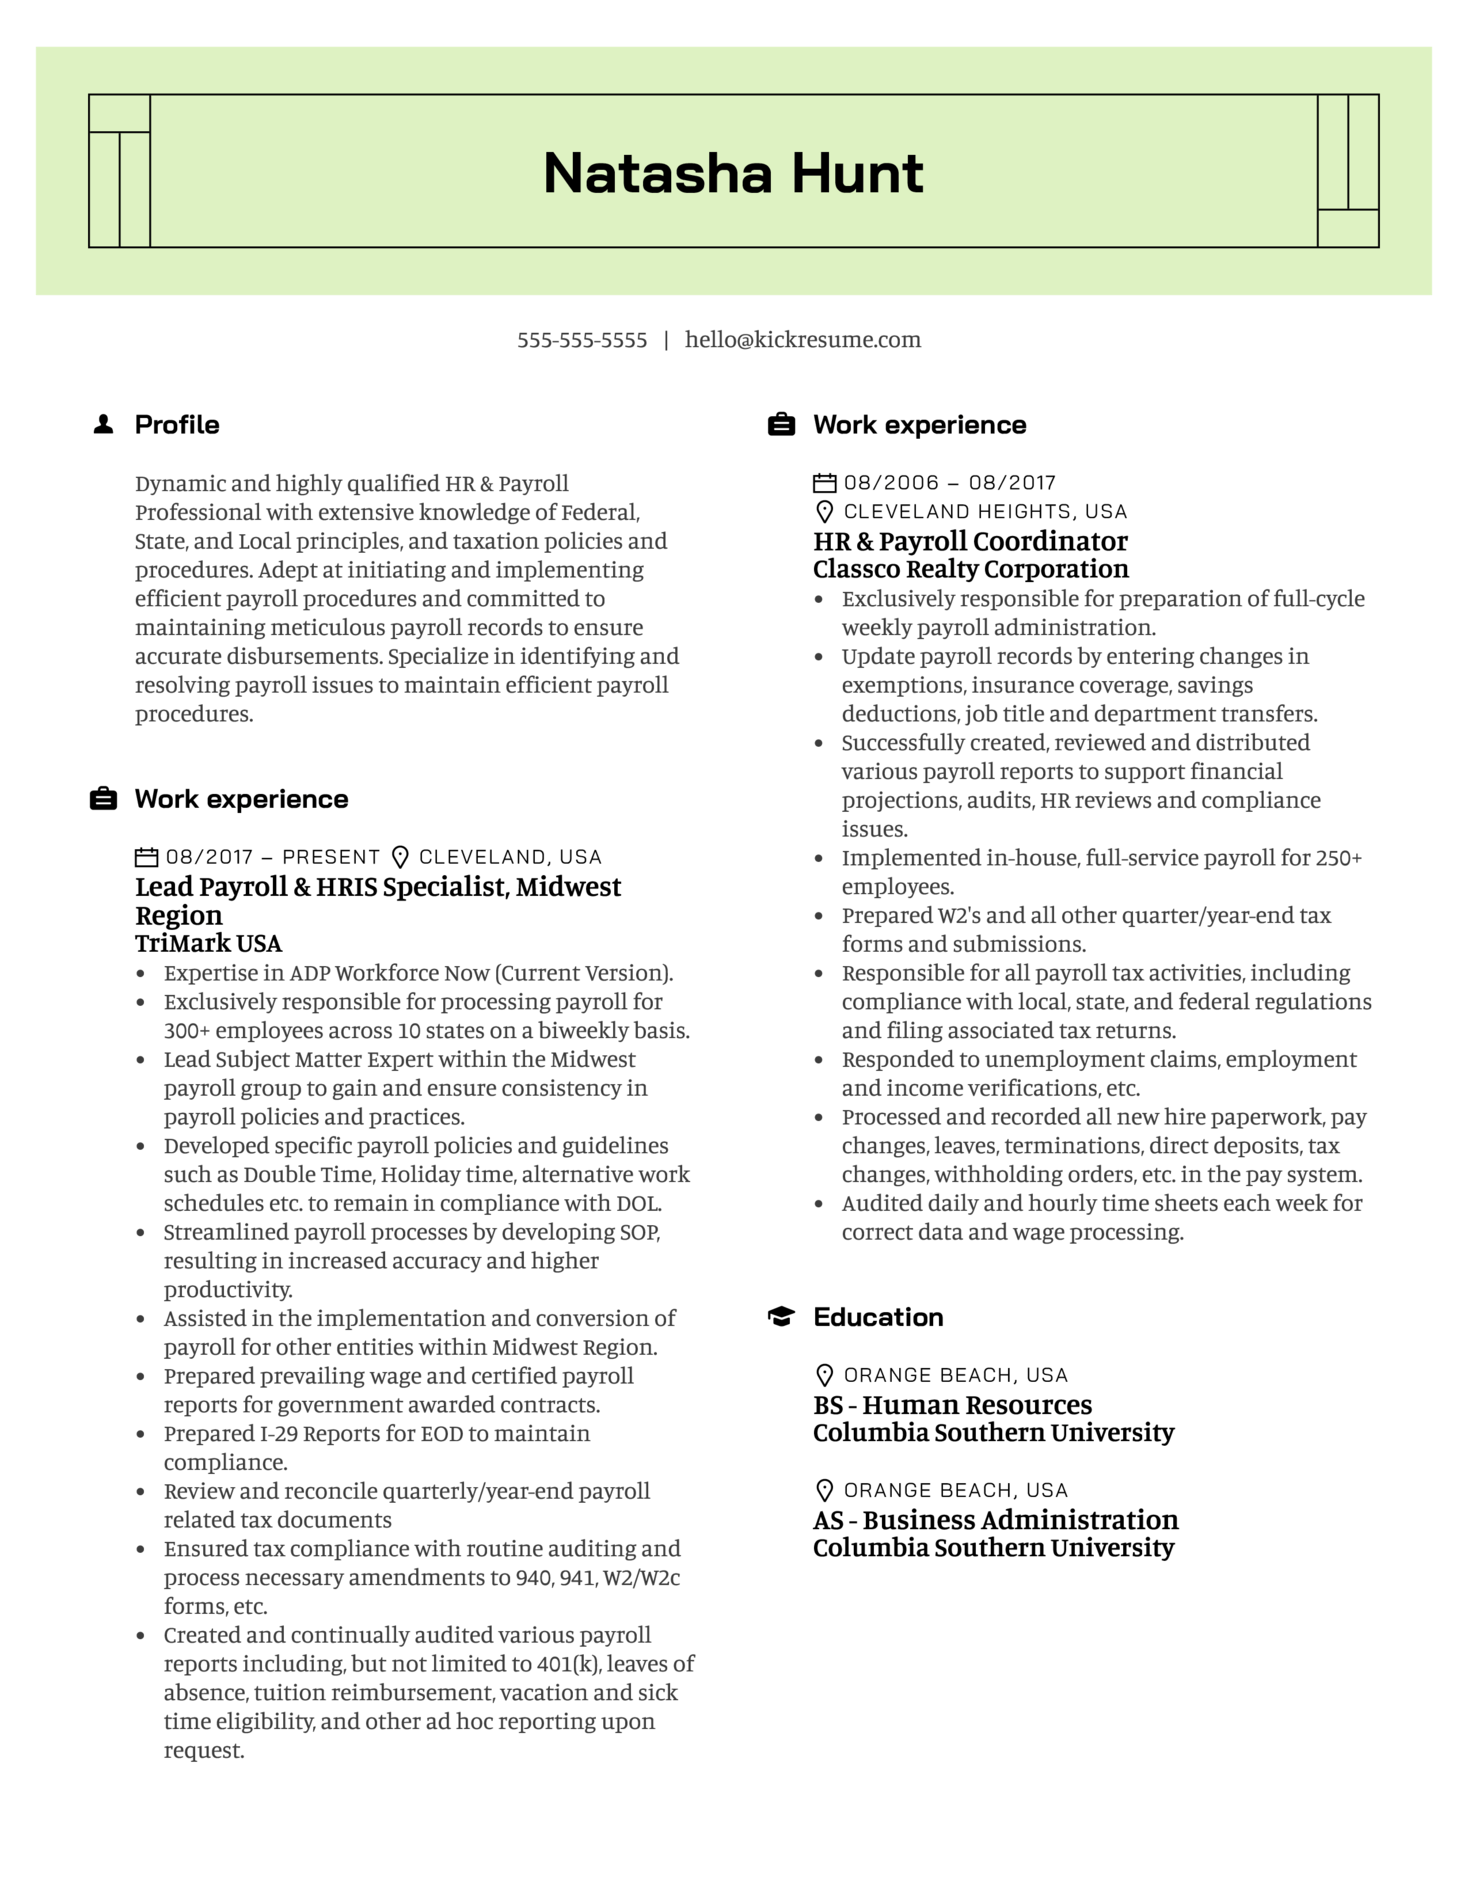 TriMark Payroll Lead Resume Example (Part 1)